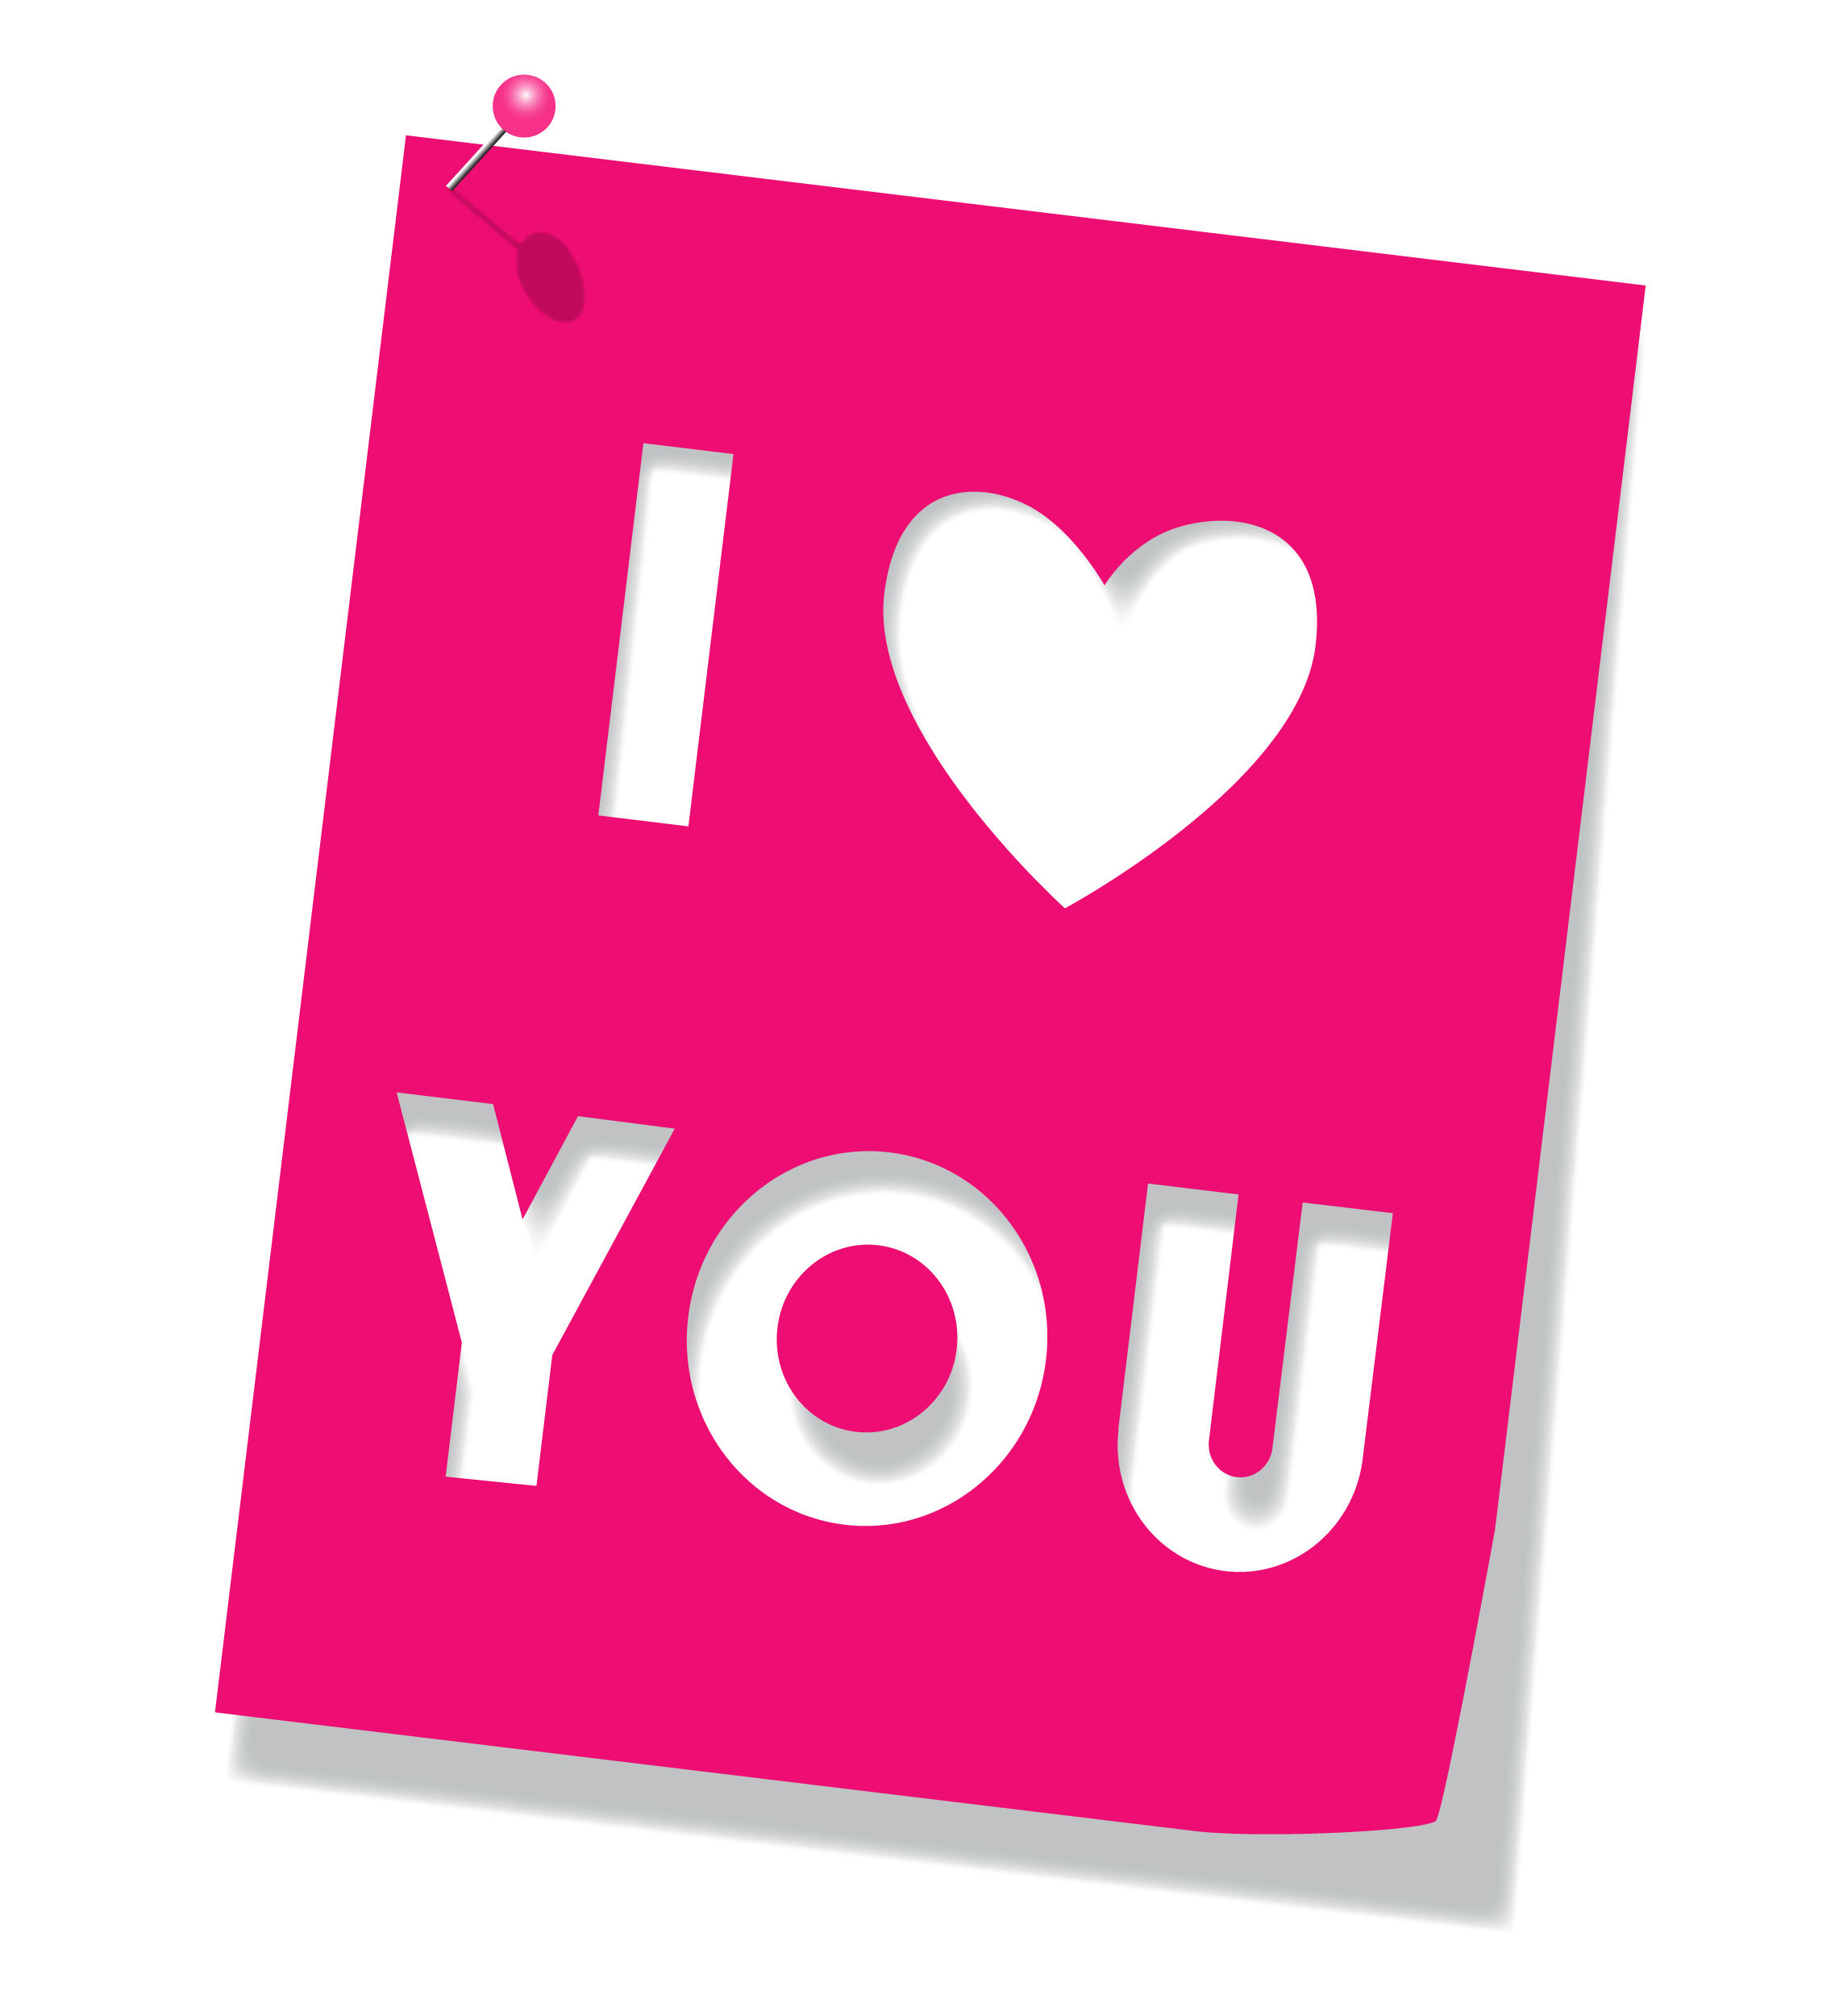 Love You Clipart-Love You Clipart-15